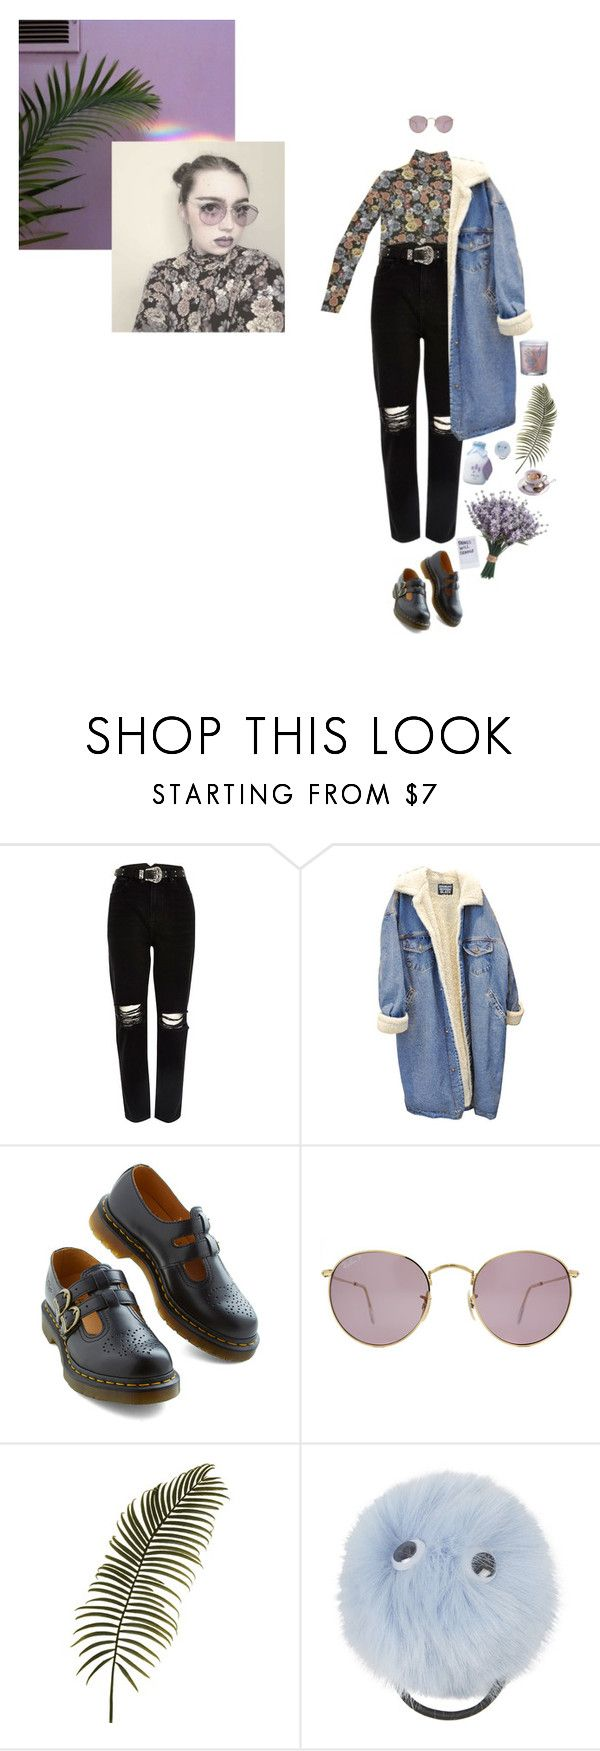 """i see the world"" by eggtartt ❤ liked on Polyvore featuring River Island, Bernie Dexter, Ray-Ban, Aroma and Topshop"